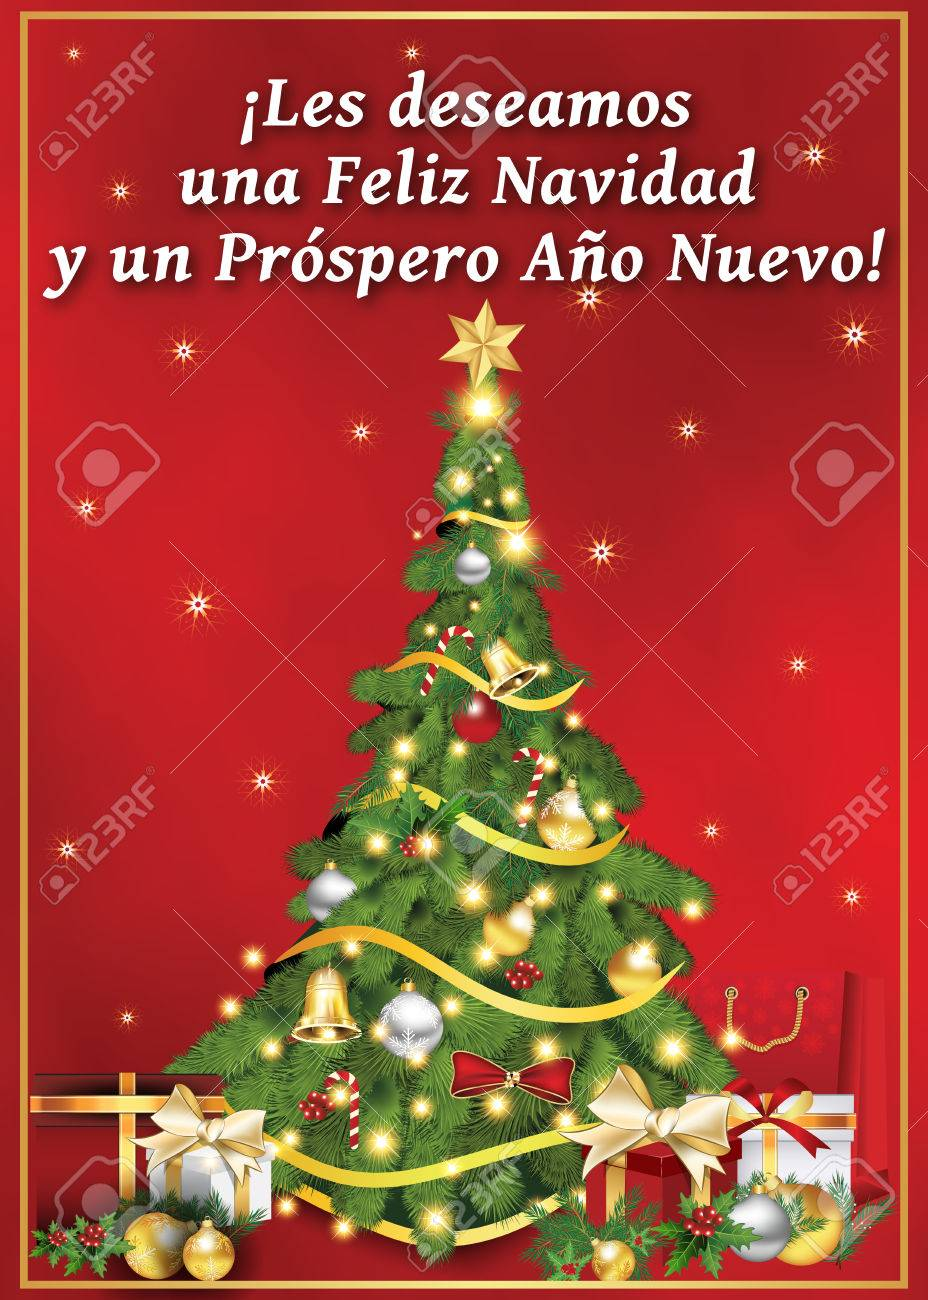 Spanish seasons greetings christmas new year card les deseamos spanish seasons greetings christmas new year card les deseamos feliz navidad y un m4hsunfo